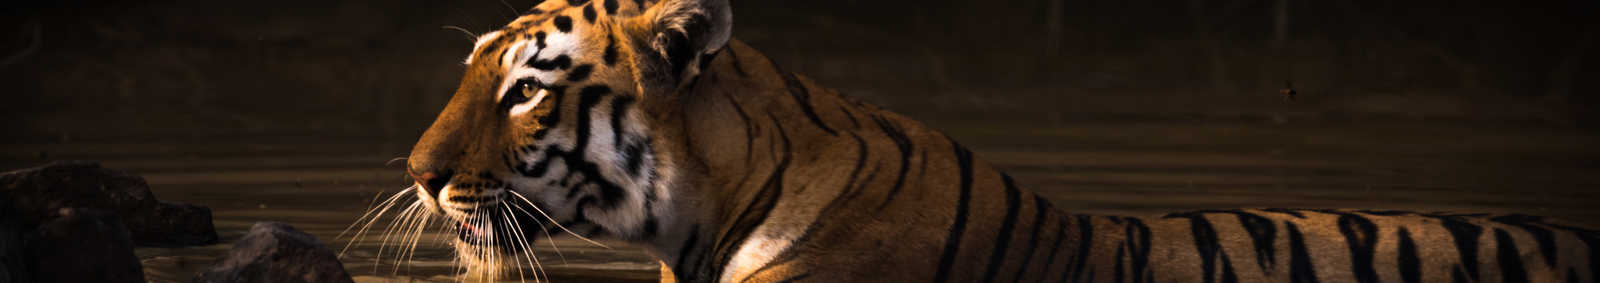 Bengal tiger with catchlight in water hole - Nick Dale